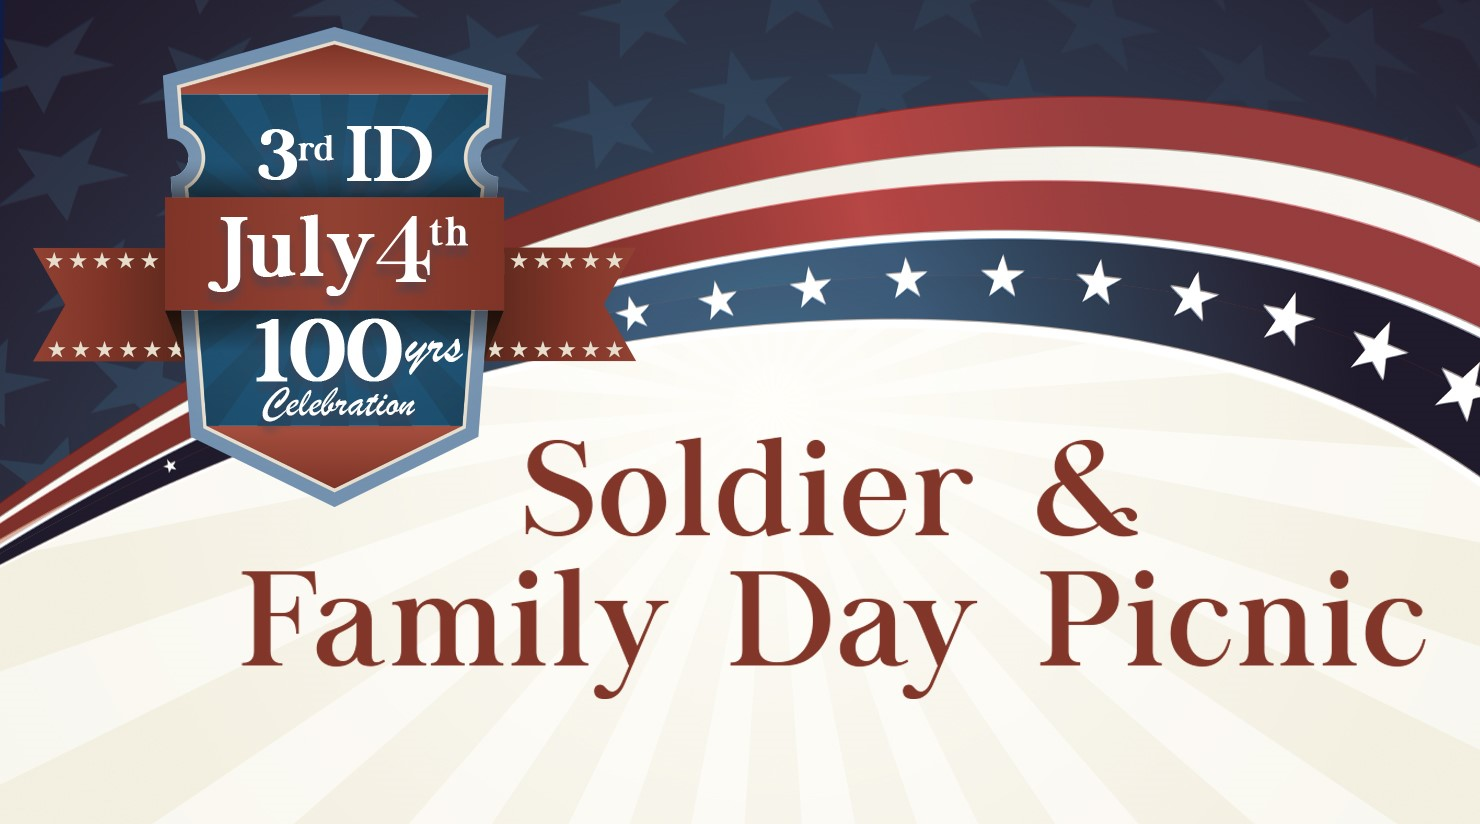 Soldier & Family Day Picnic